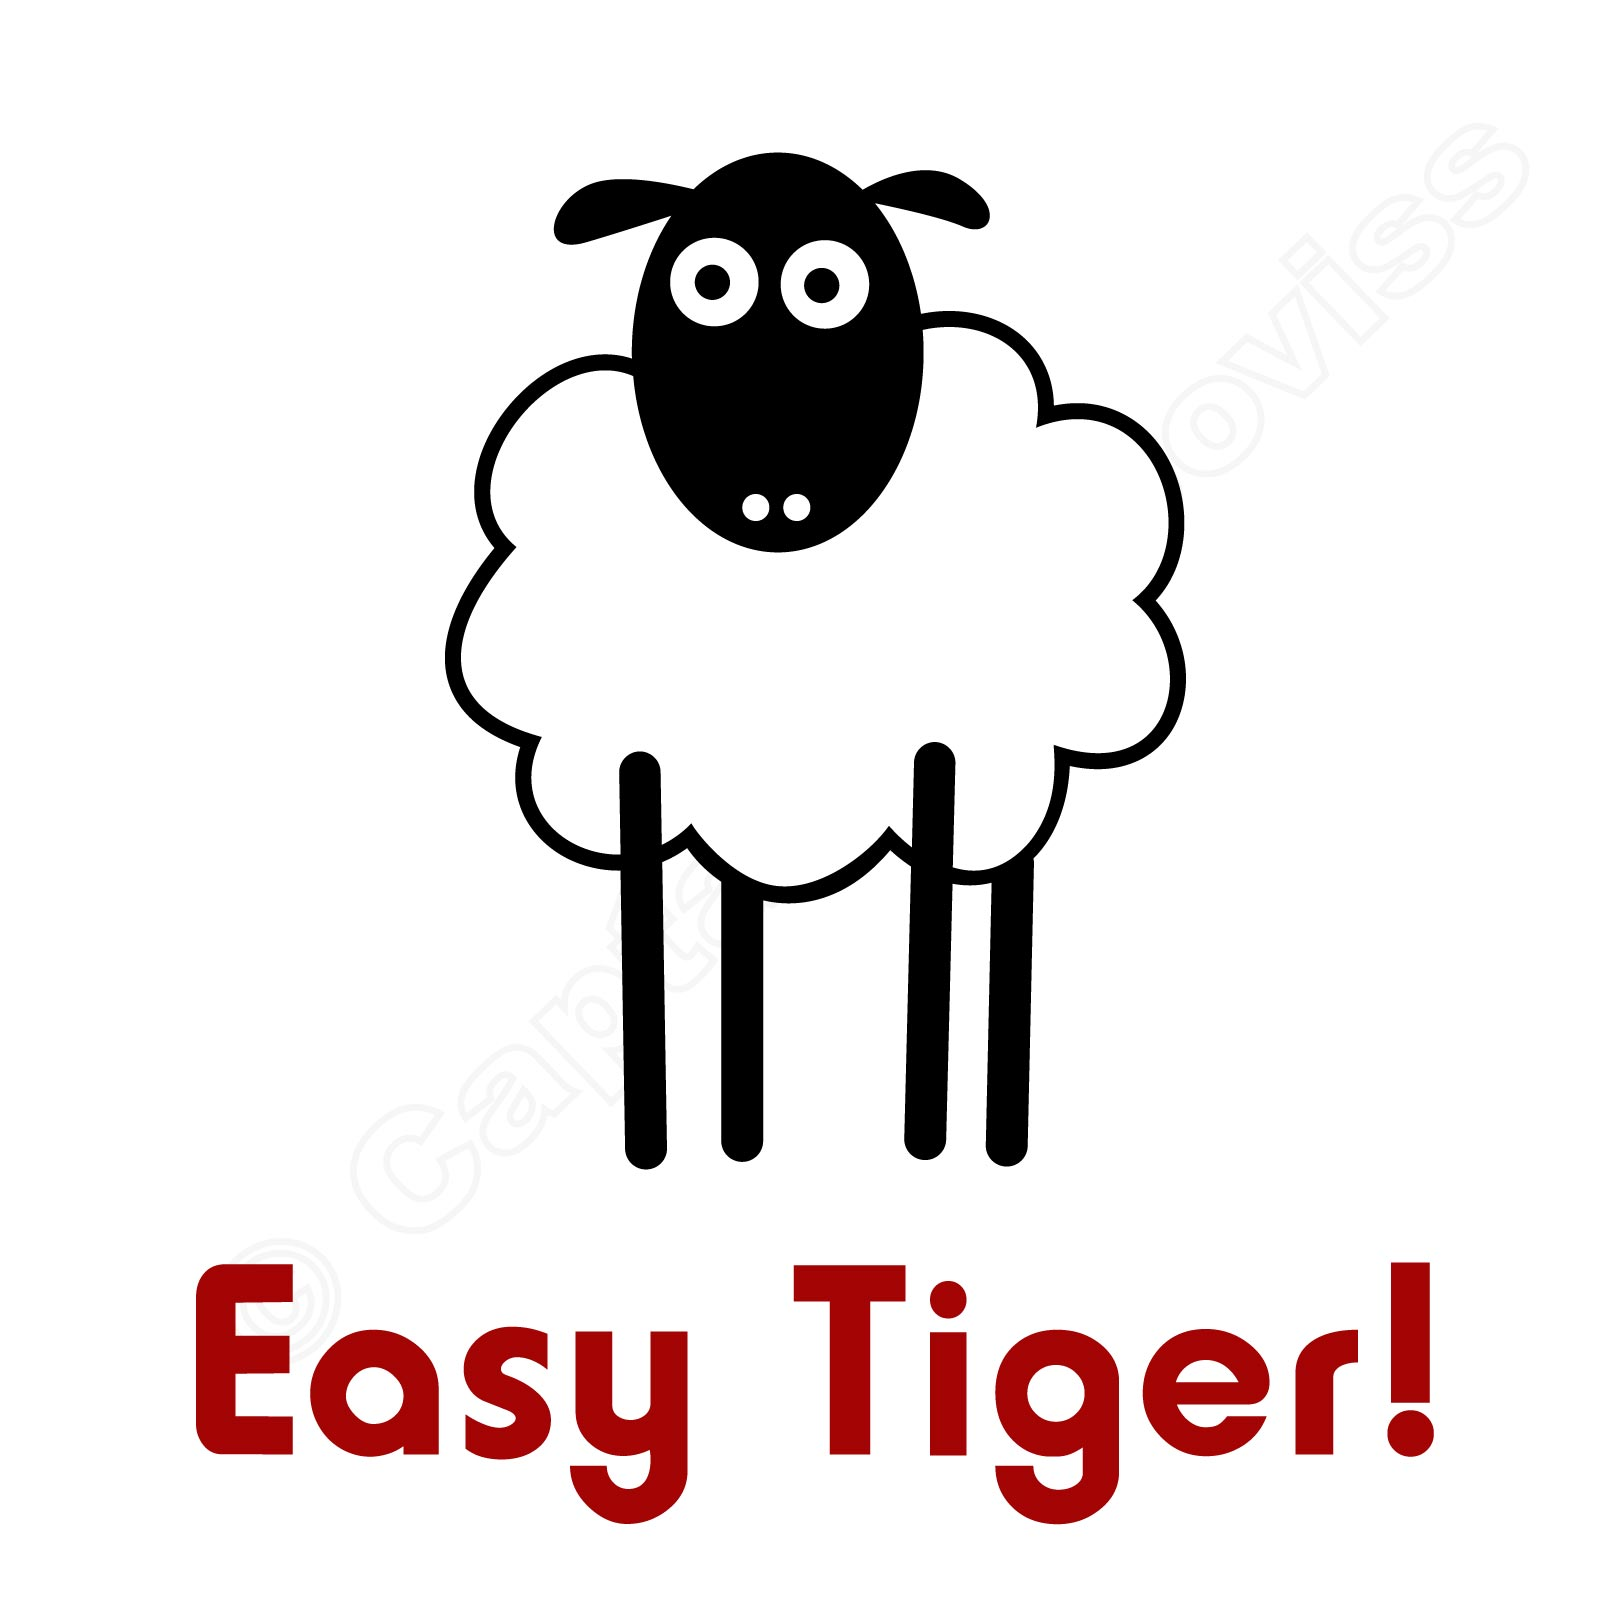 Tiger clipart easy pencil and in color tiger jpg.